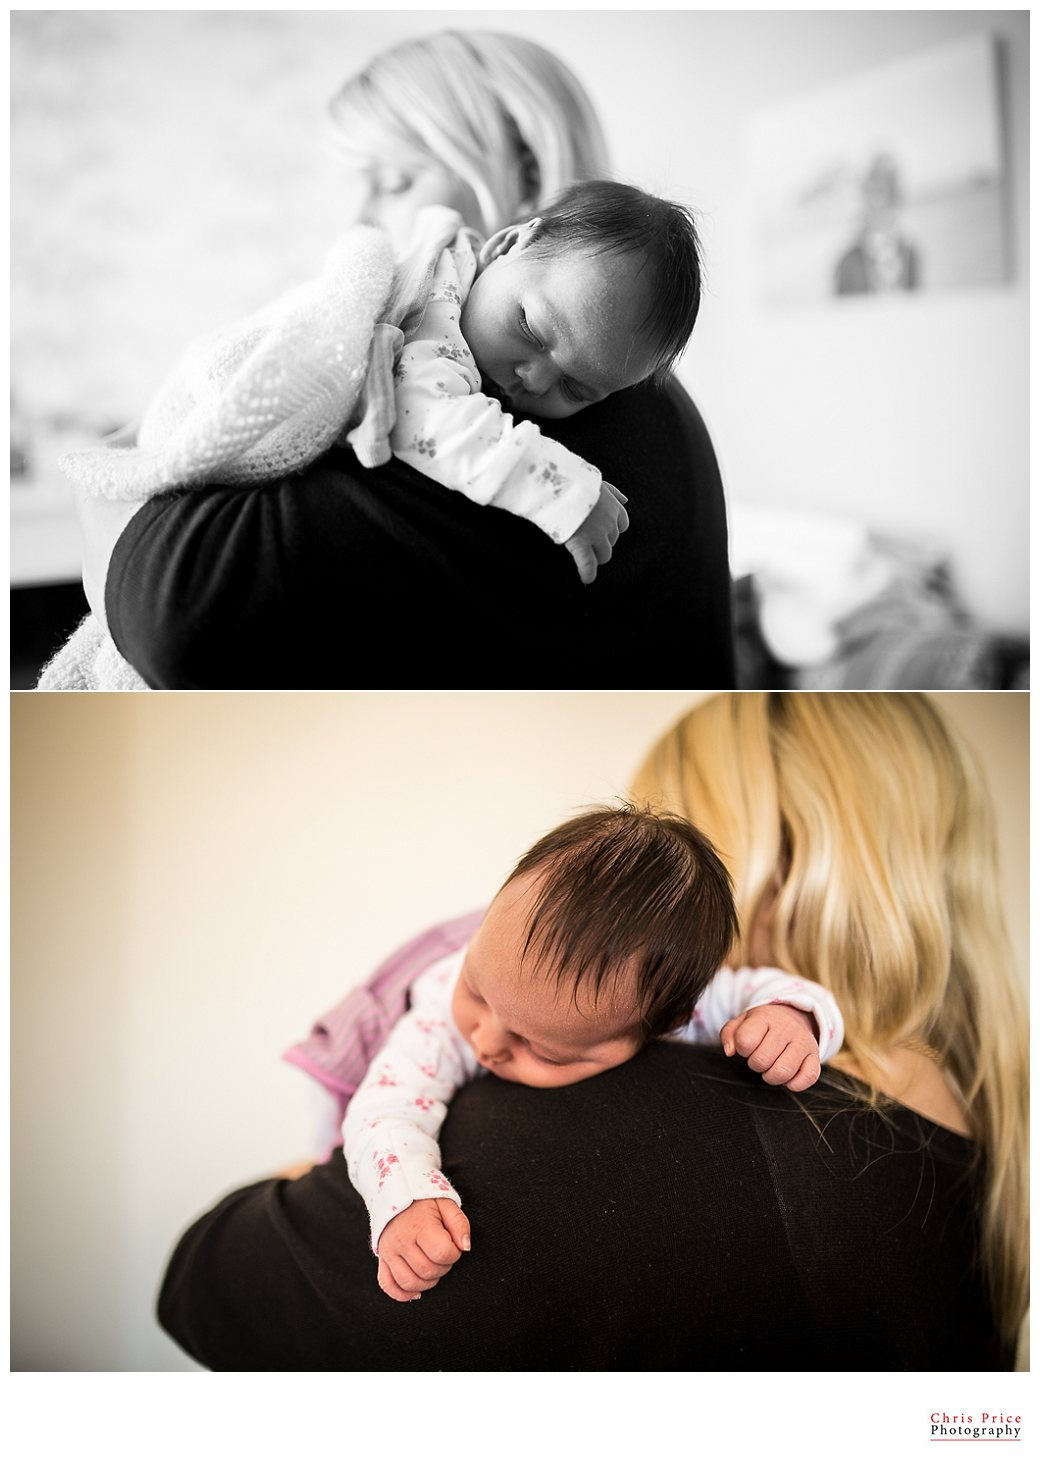 Chris Price Photography, Pembrokeshire, newborn photography